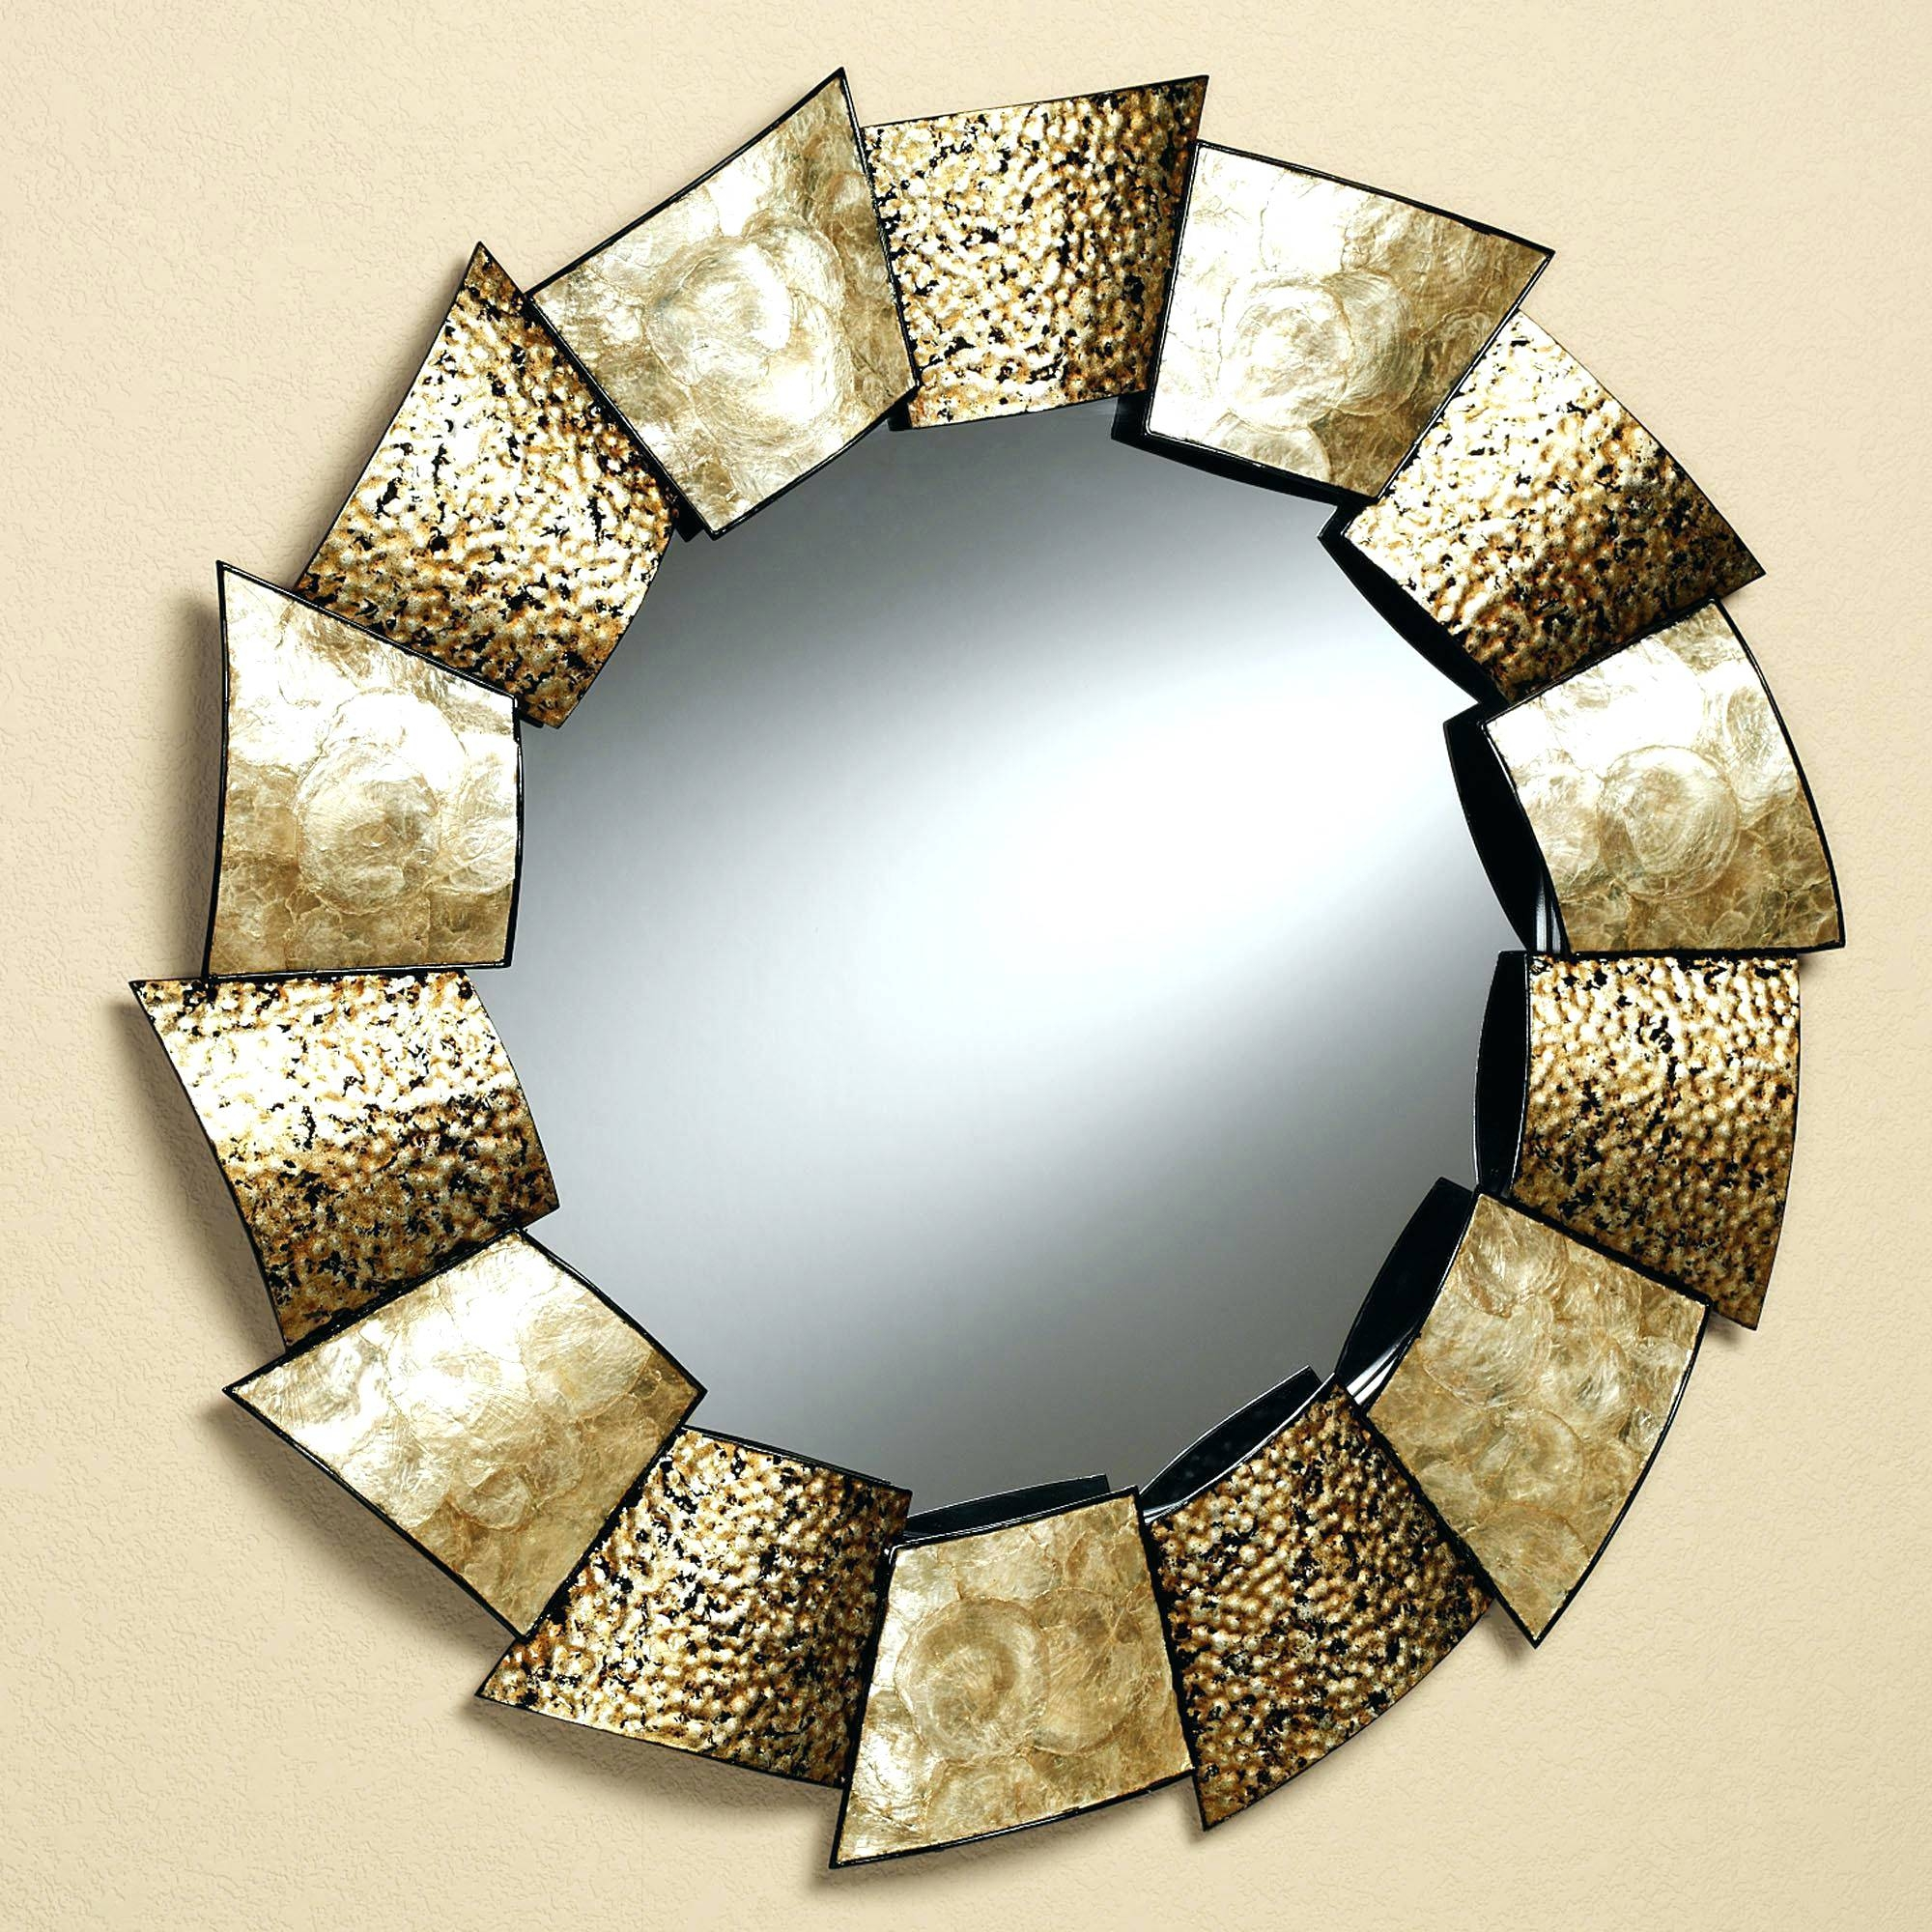 Wall Mirrors ~ Oval Shaped Wall Mirrors Unique Wall Mirror Decor For Oval Shaped Wall Mirrors (View 9 of 15)